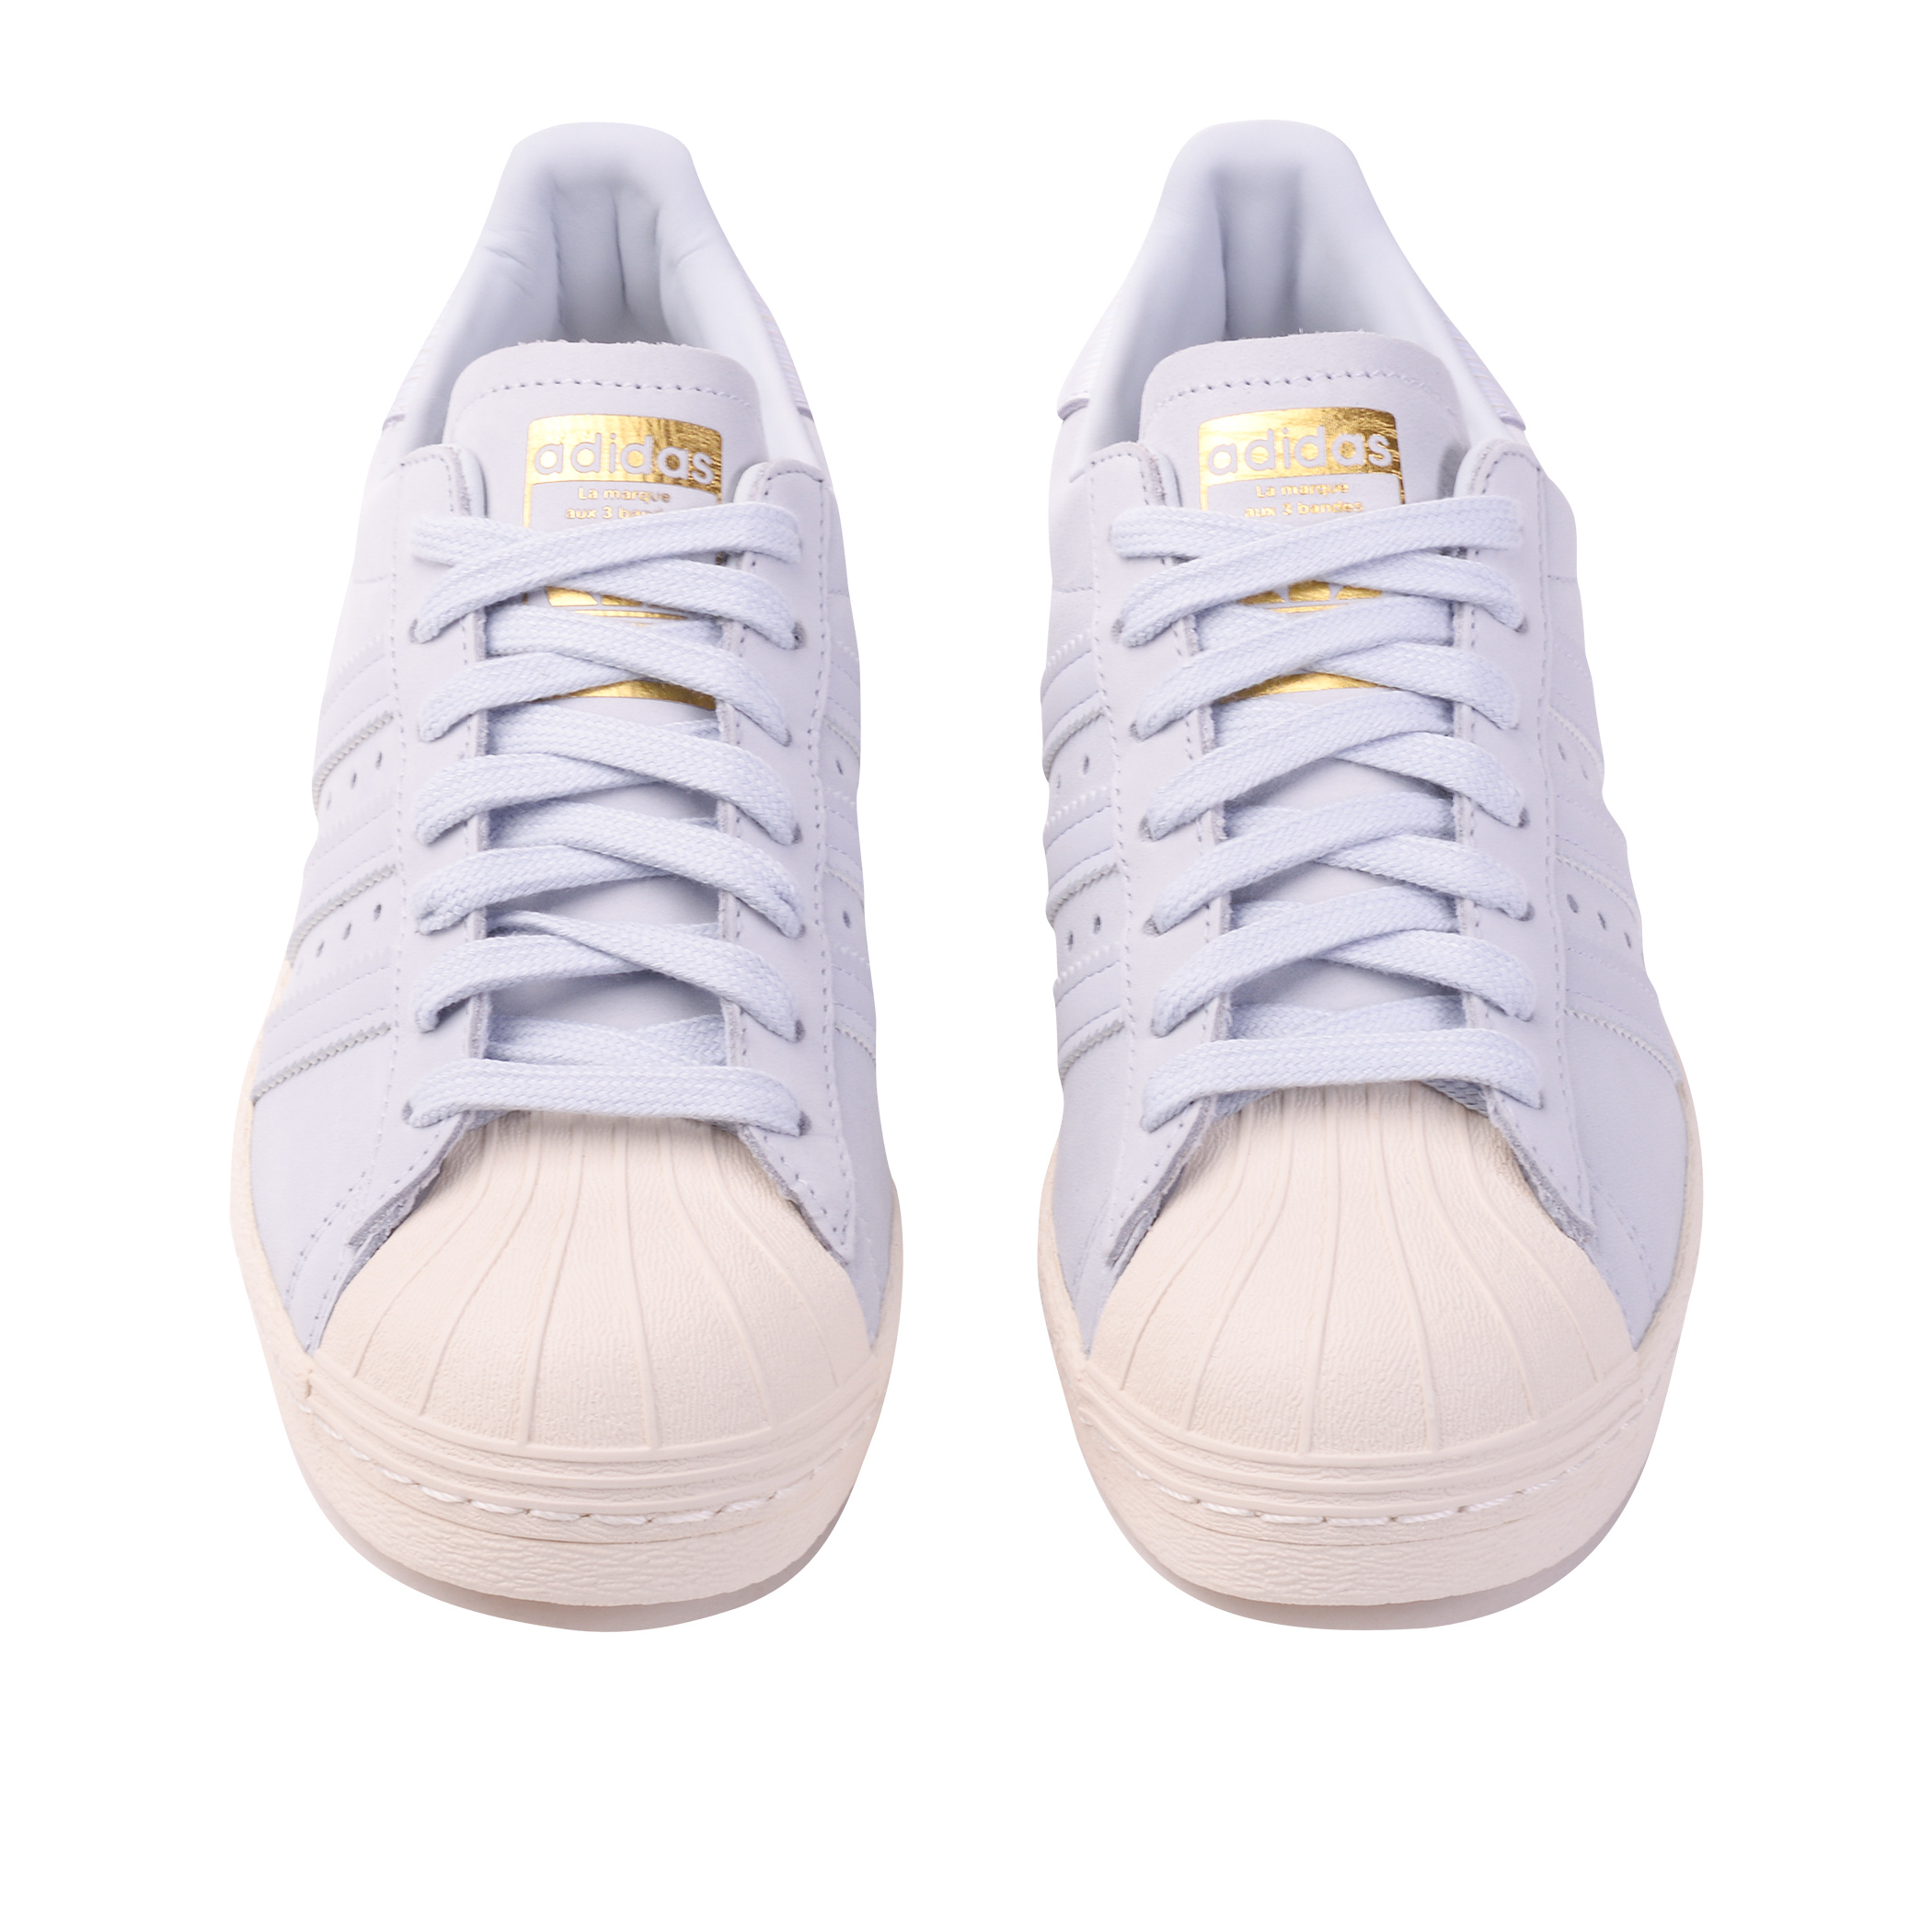 Adidas Superstar 80s BB2226 Trace Cargo Gold Metallic